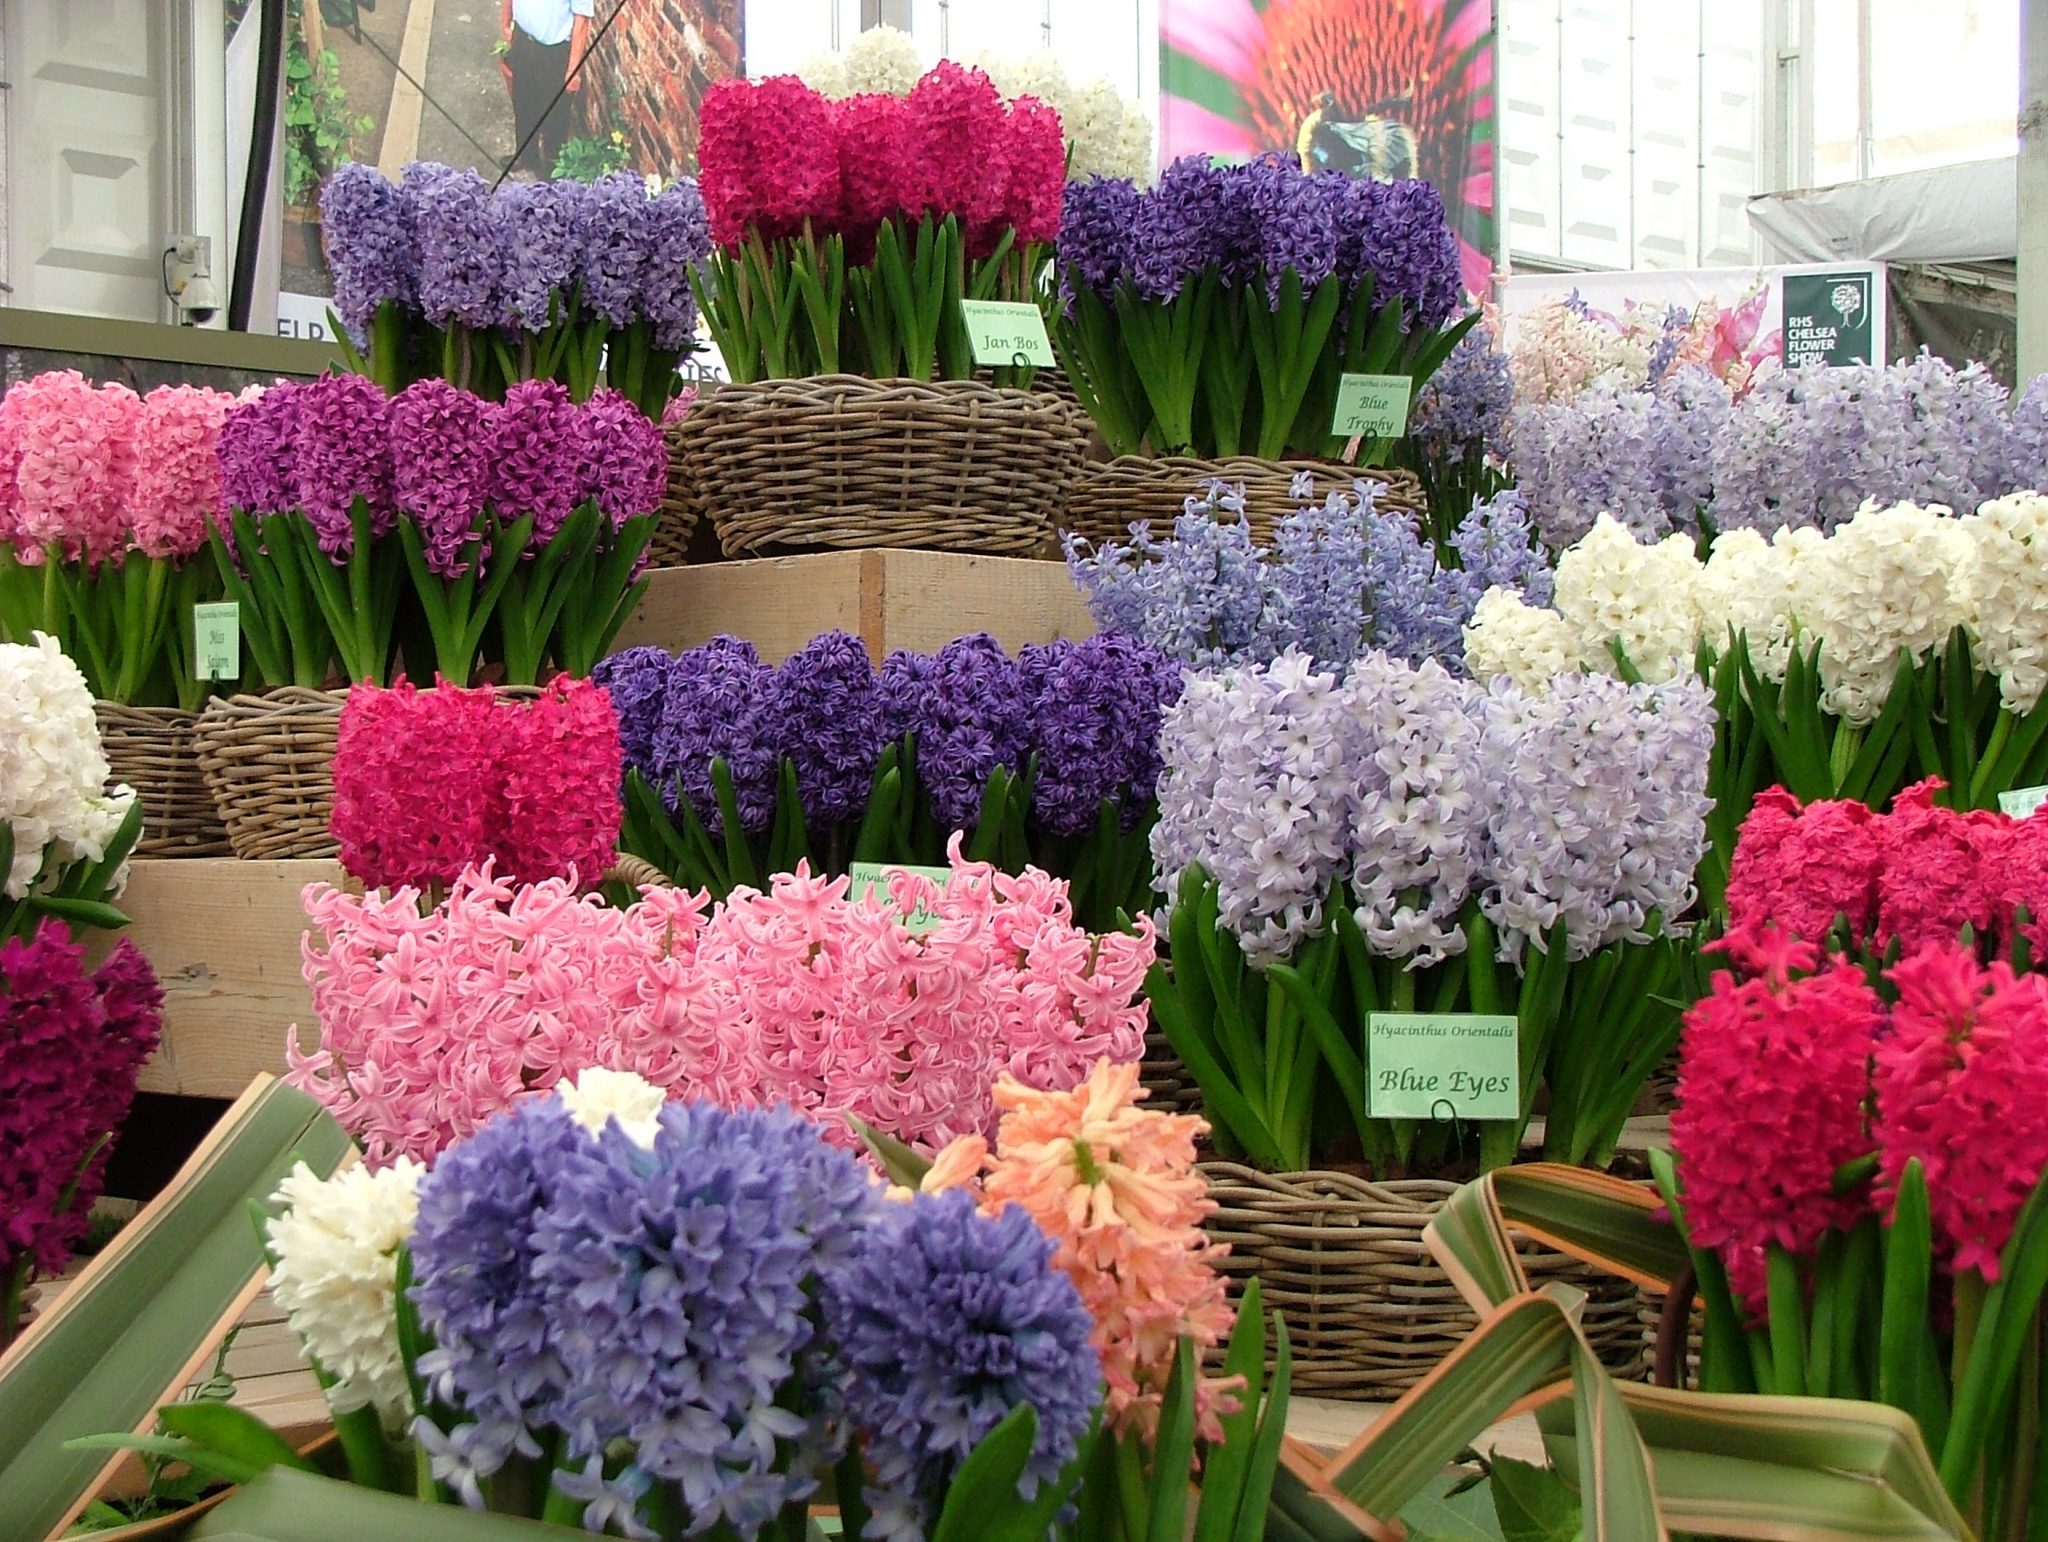 ...and Armies of Hyacinths. Photo by Anne Guy.